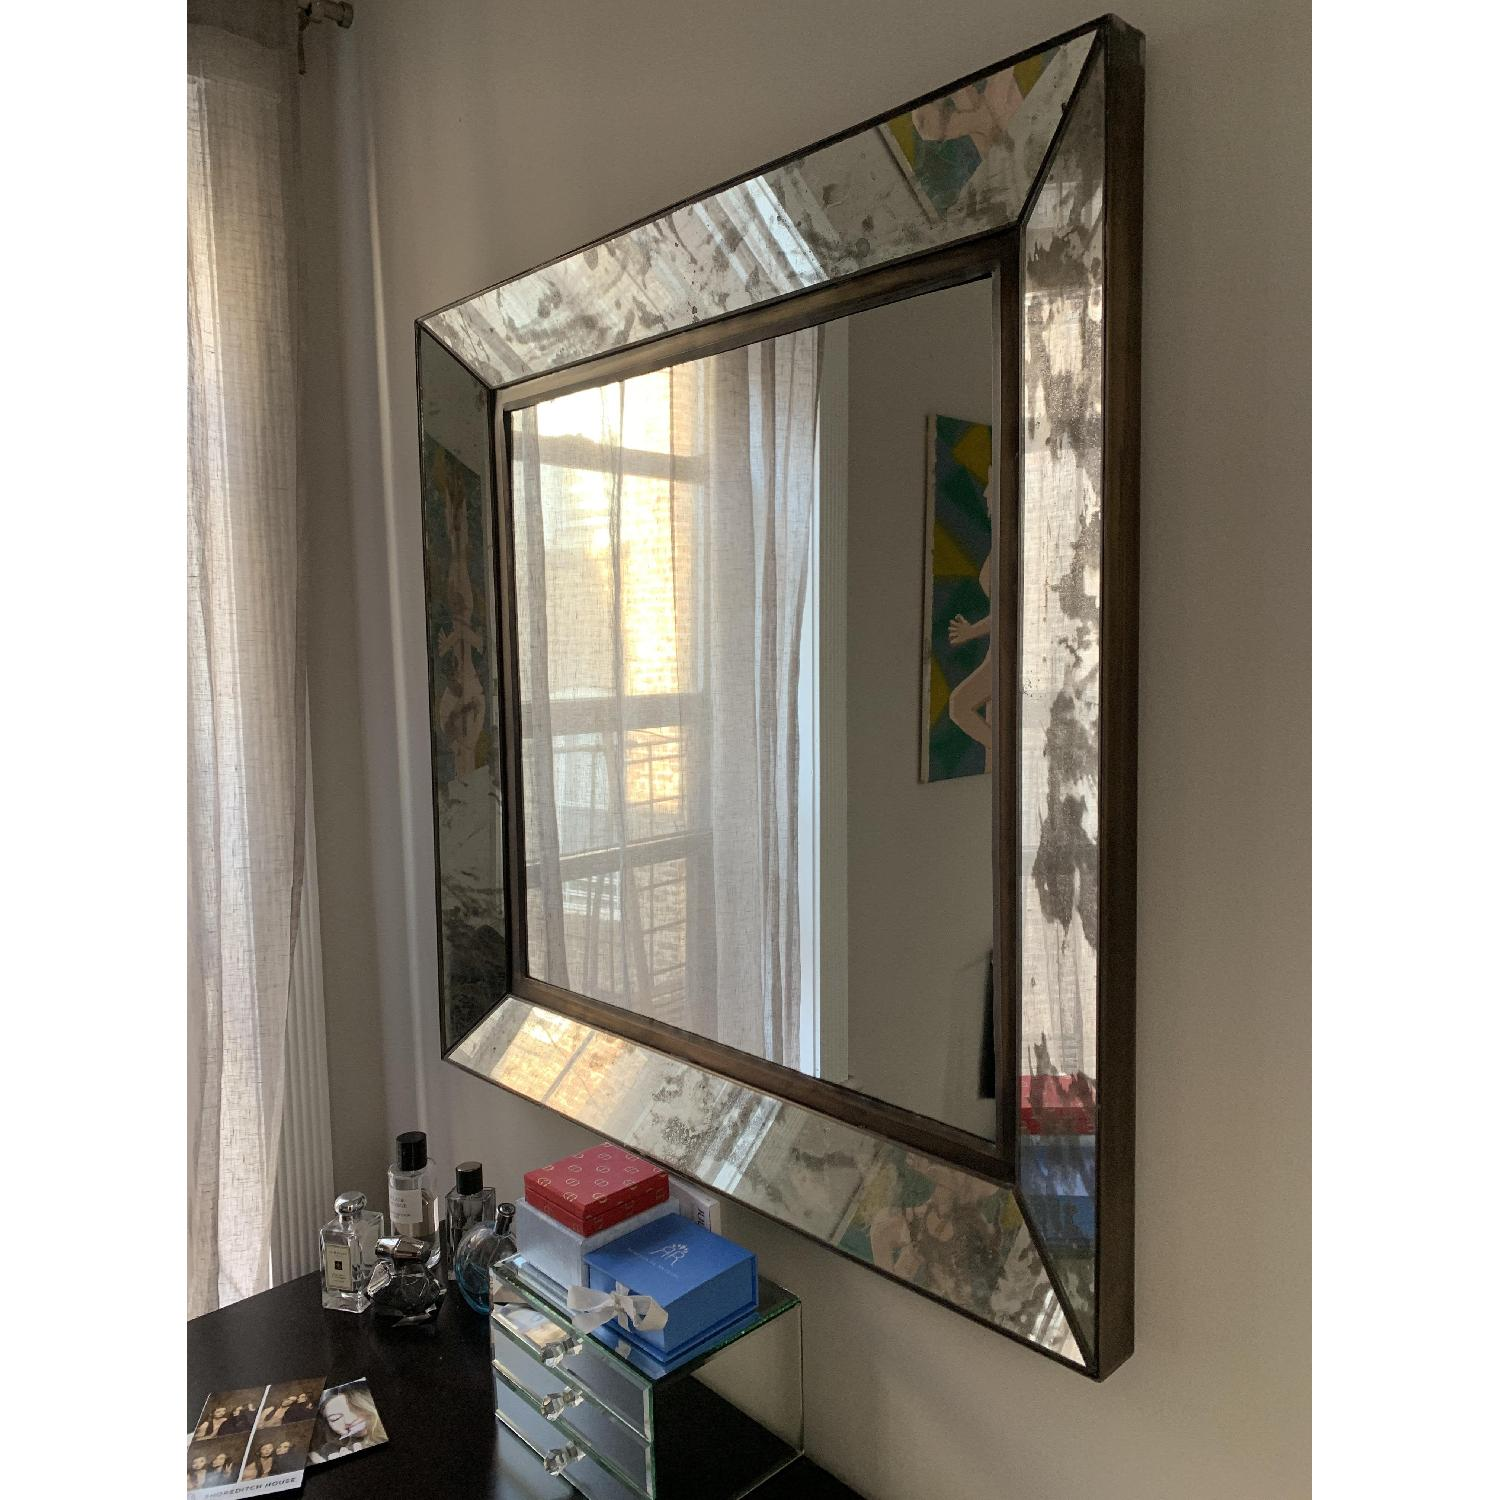 Crate & Barrel Dubois Large Square Wall Mirror-1